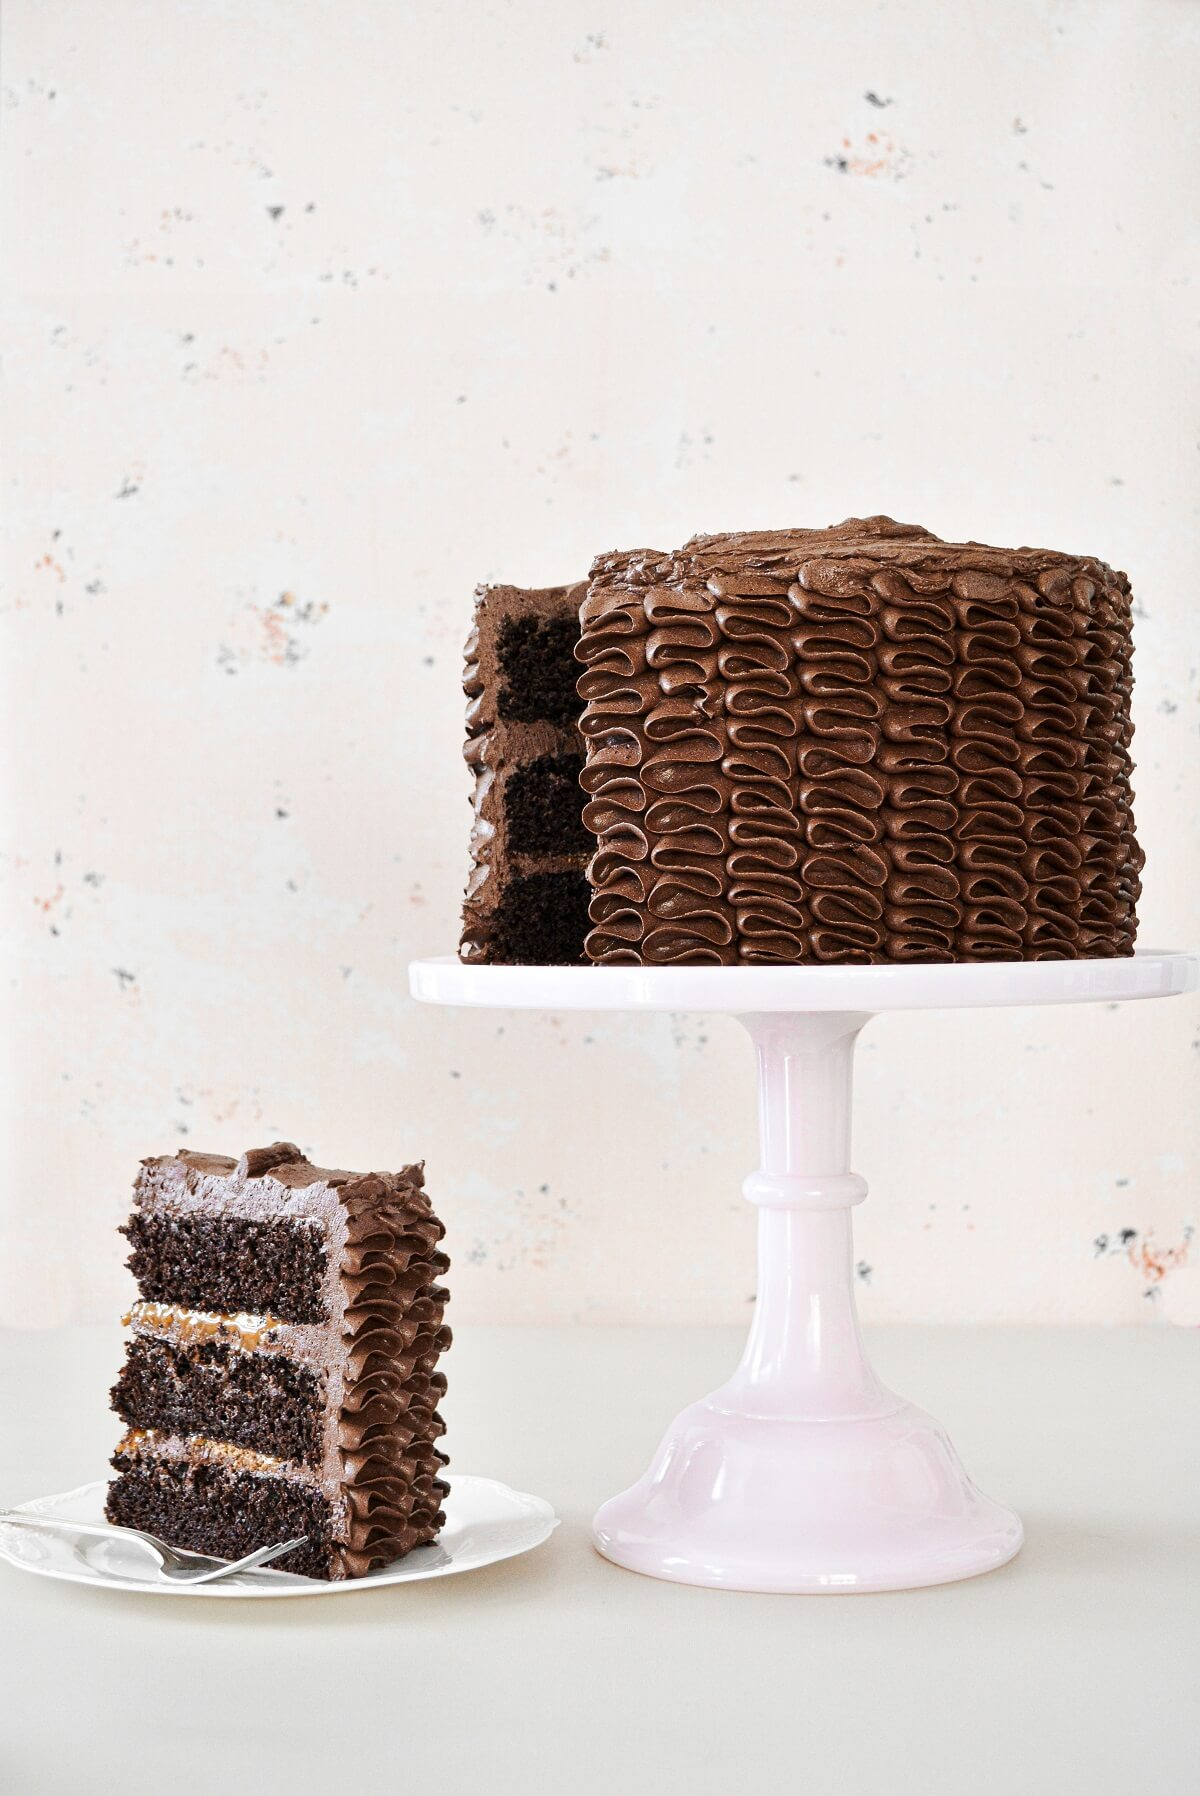 Chocolate caramel toffee cake with piped ruffled buttercream, and a slice cut.